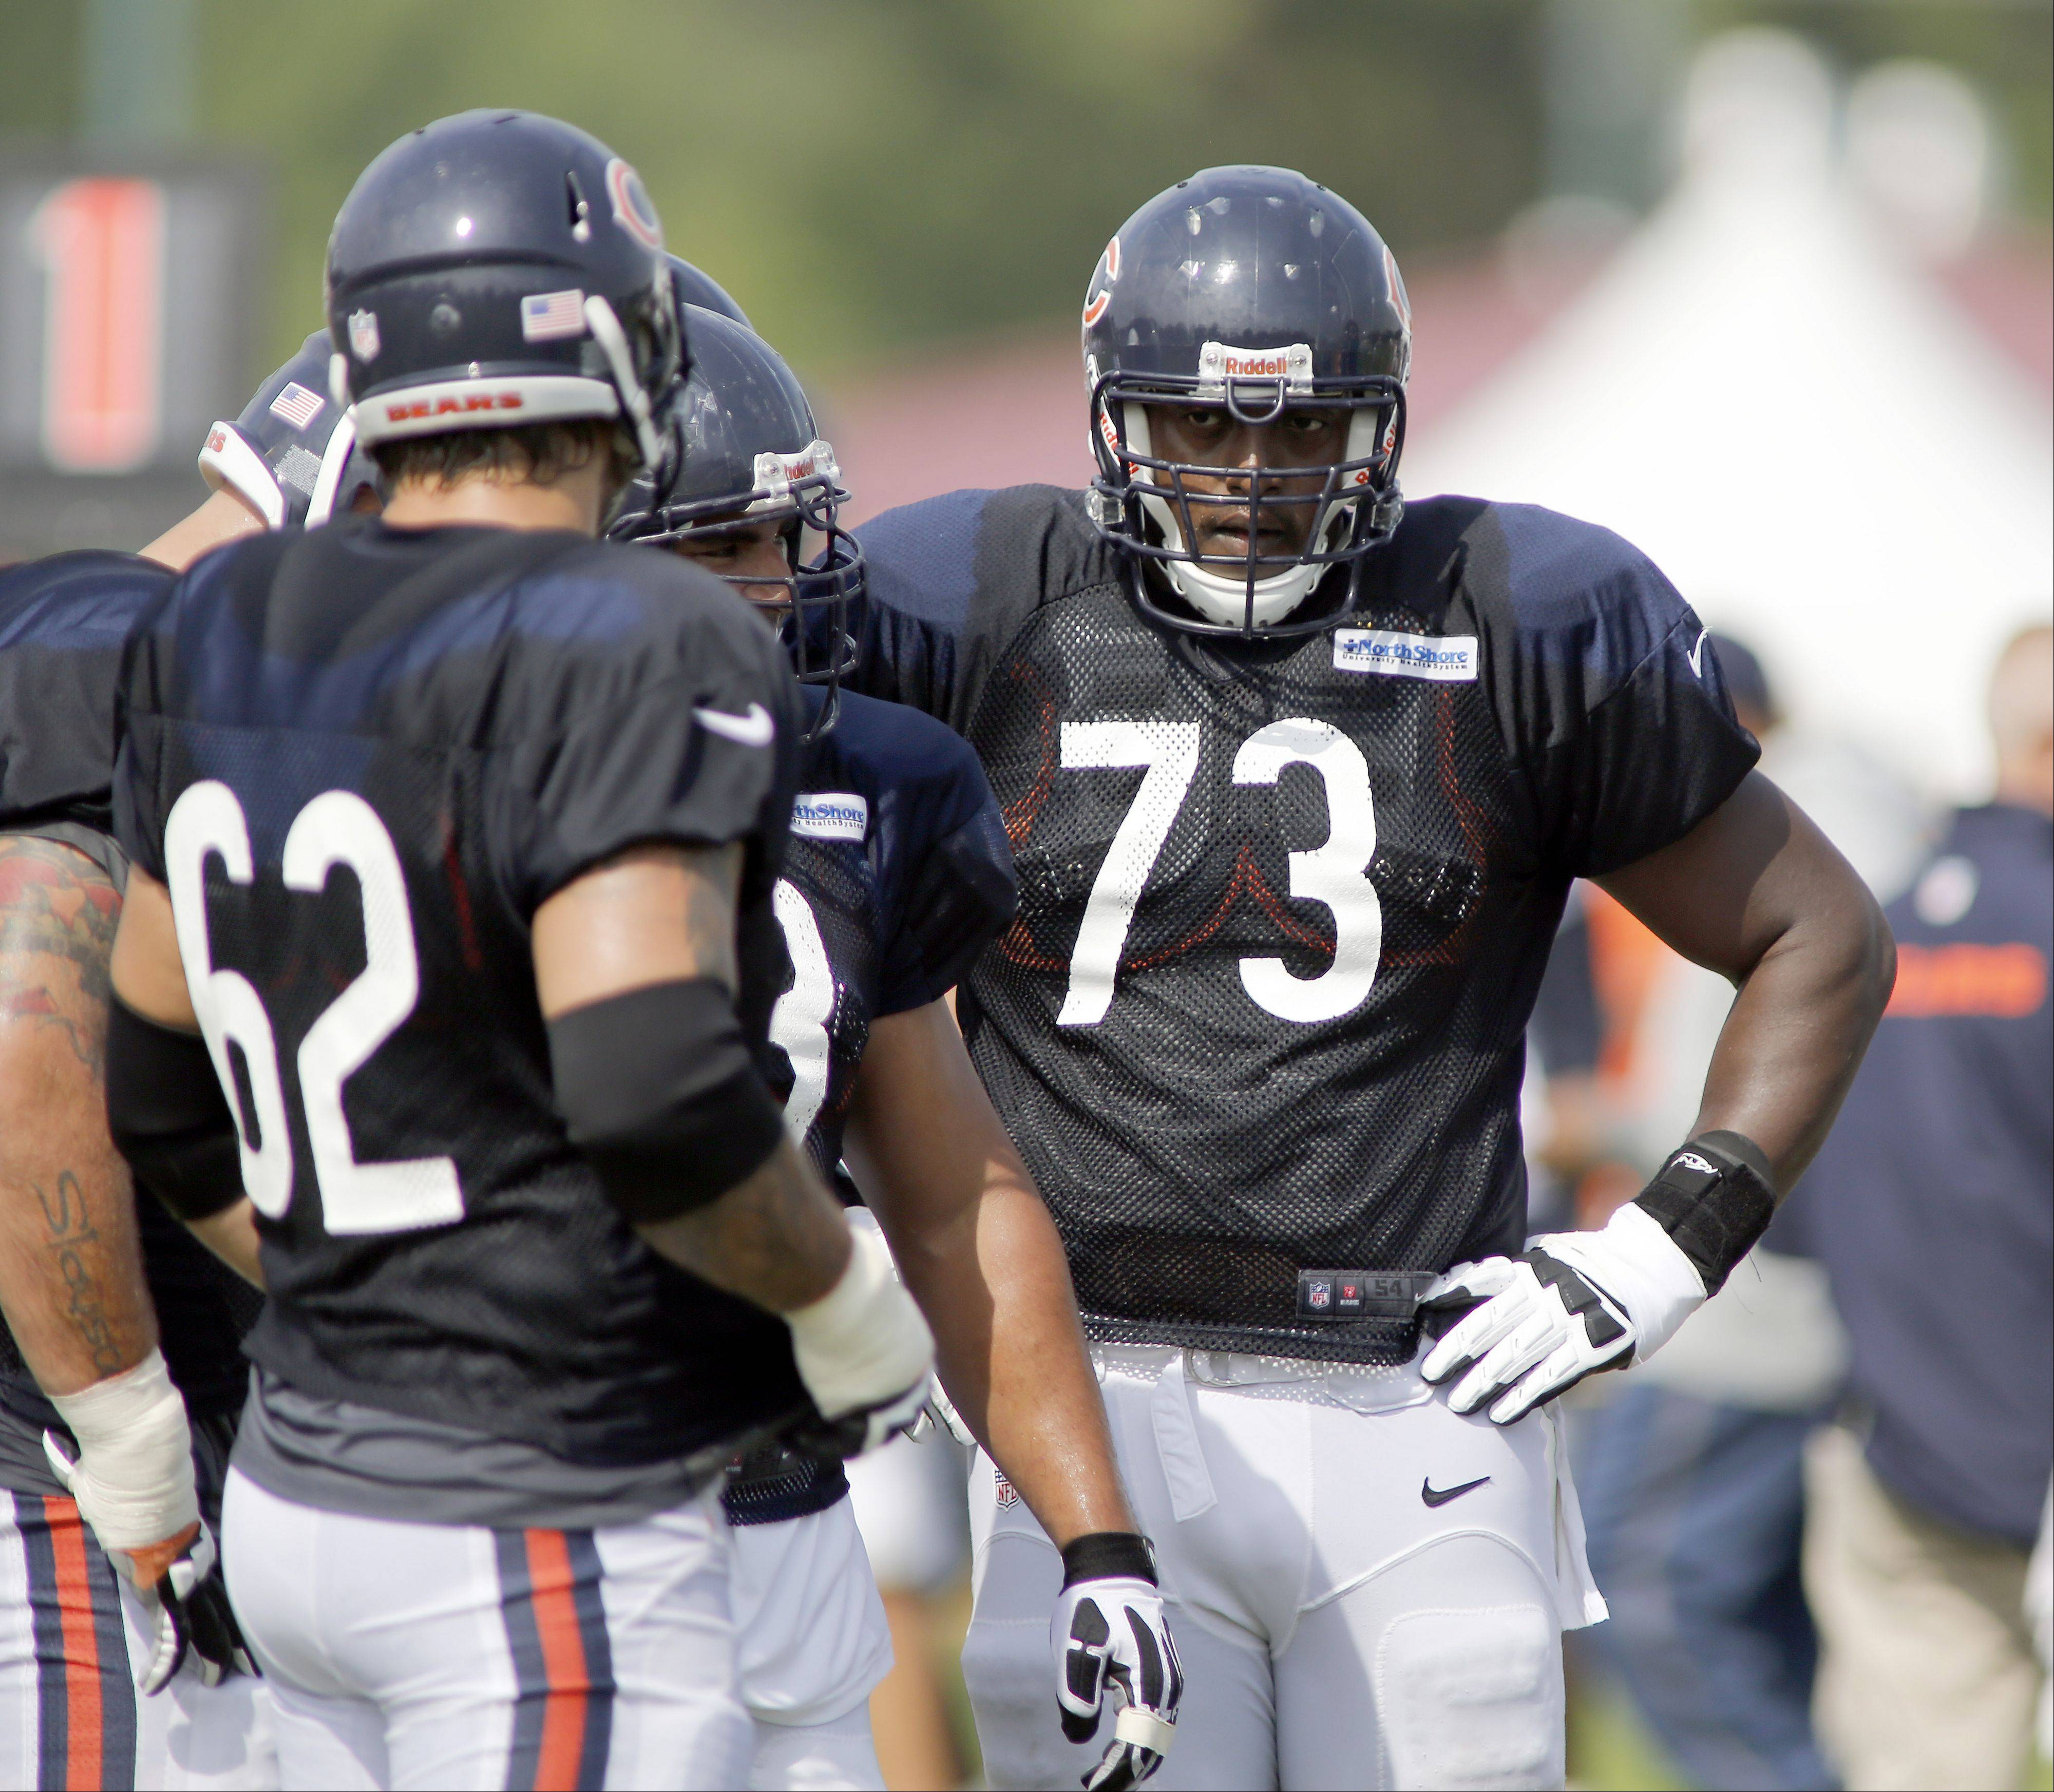 Bears right tackle J'Marcus Webb (73) found himself behind rookie Jordan Mills on the depth chart at Sunday's practice.